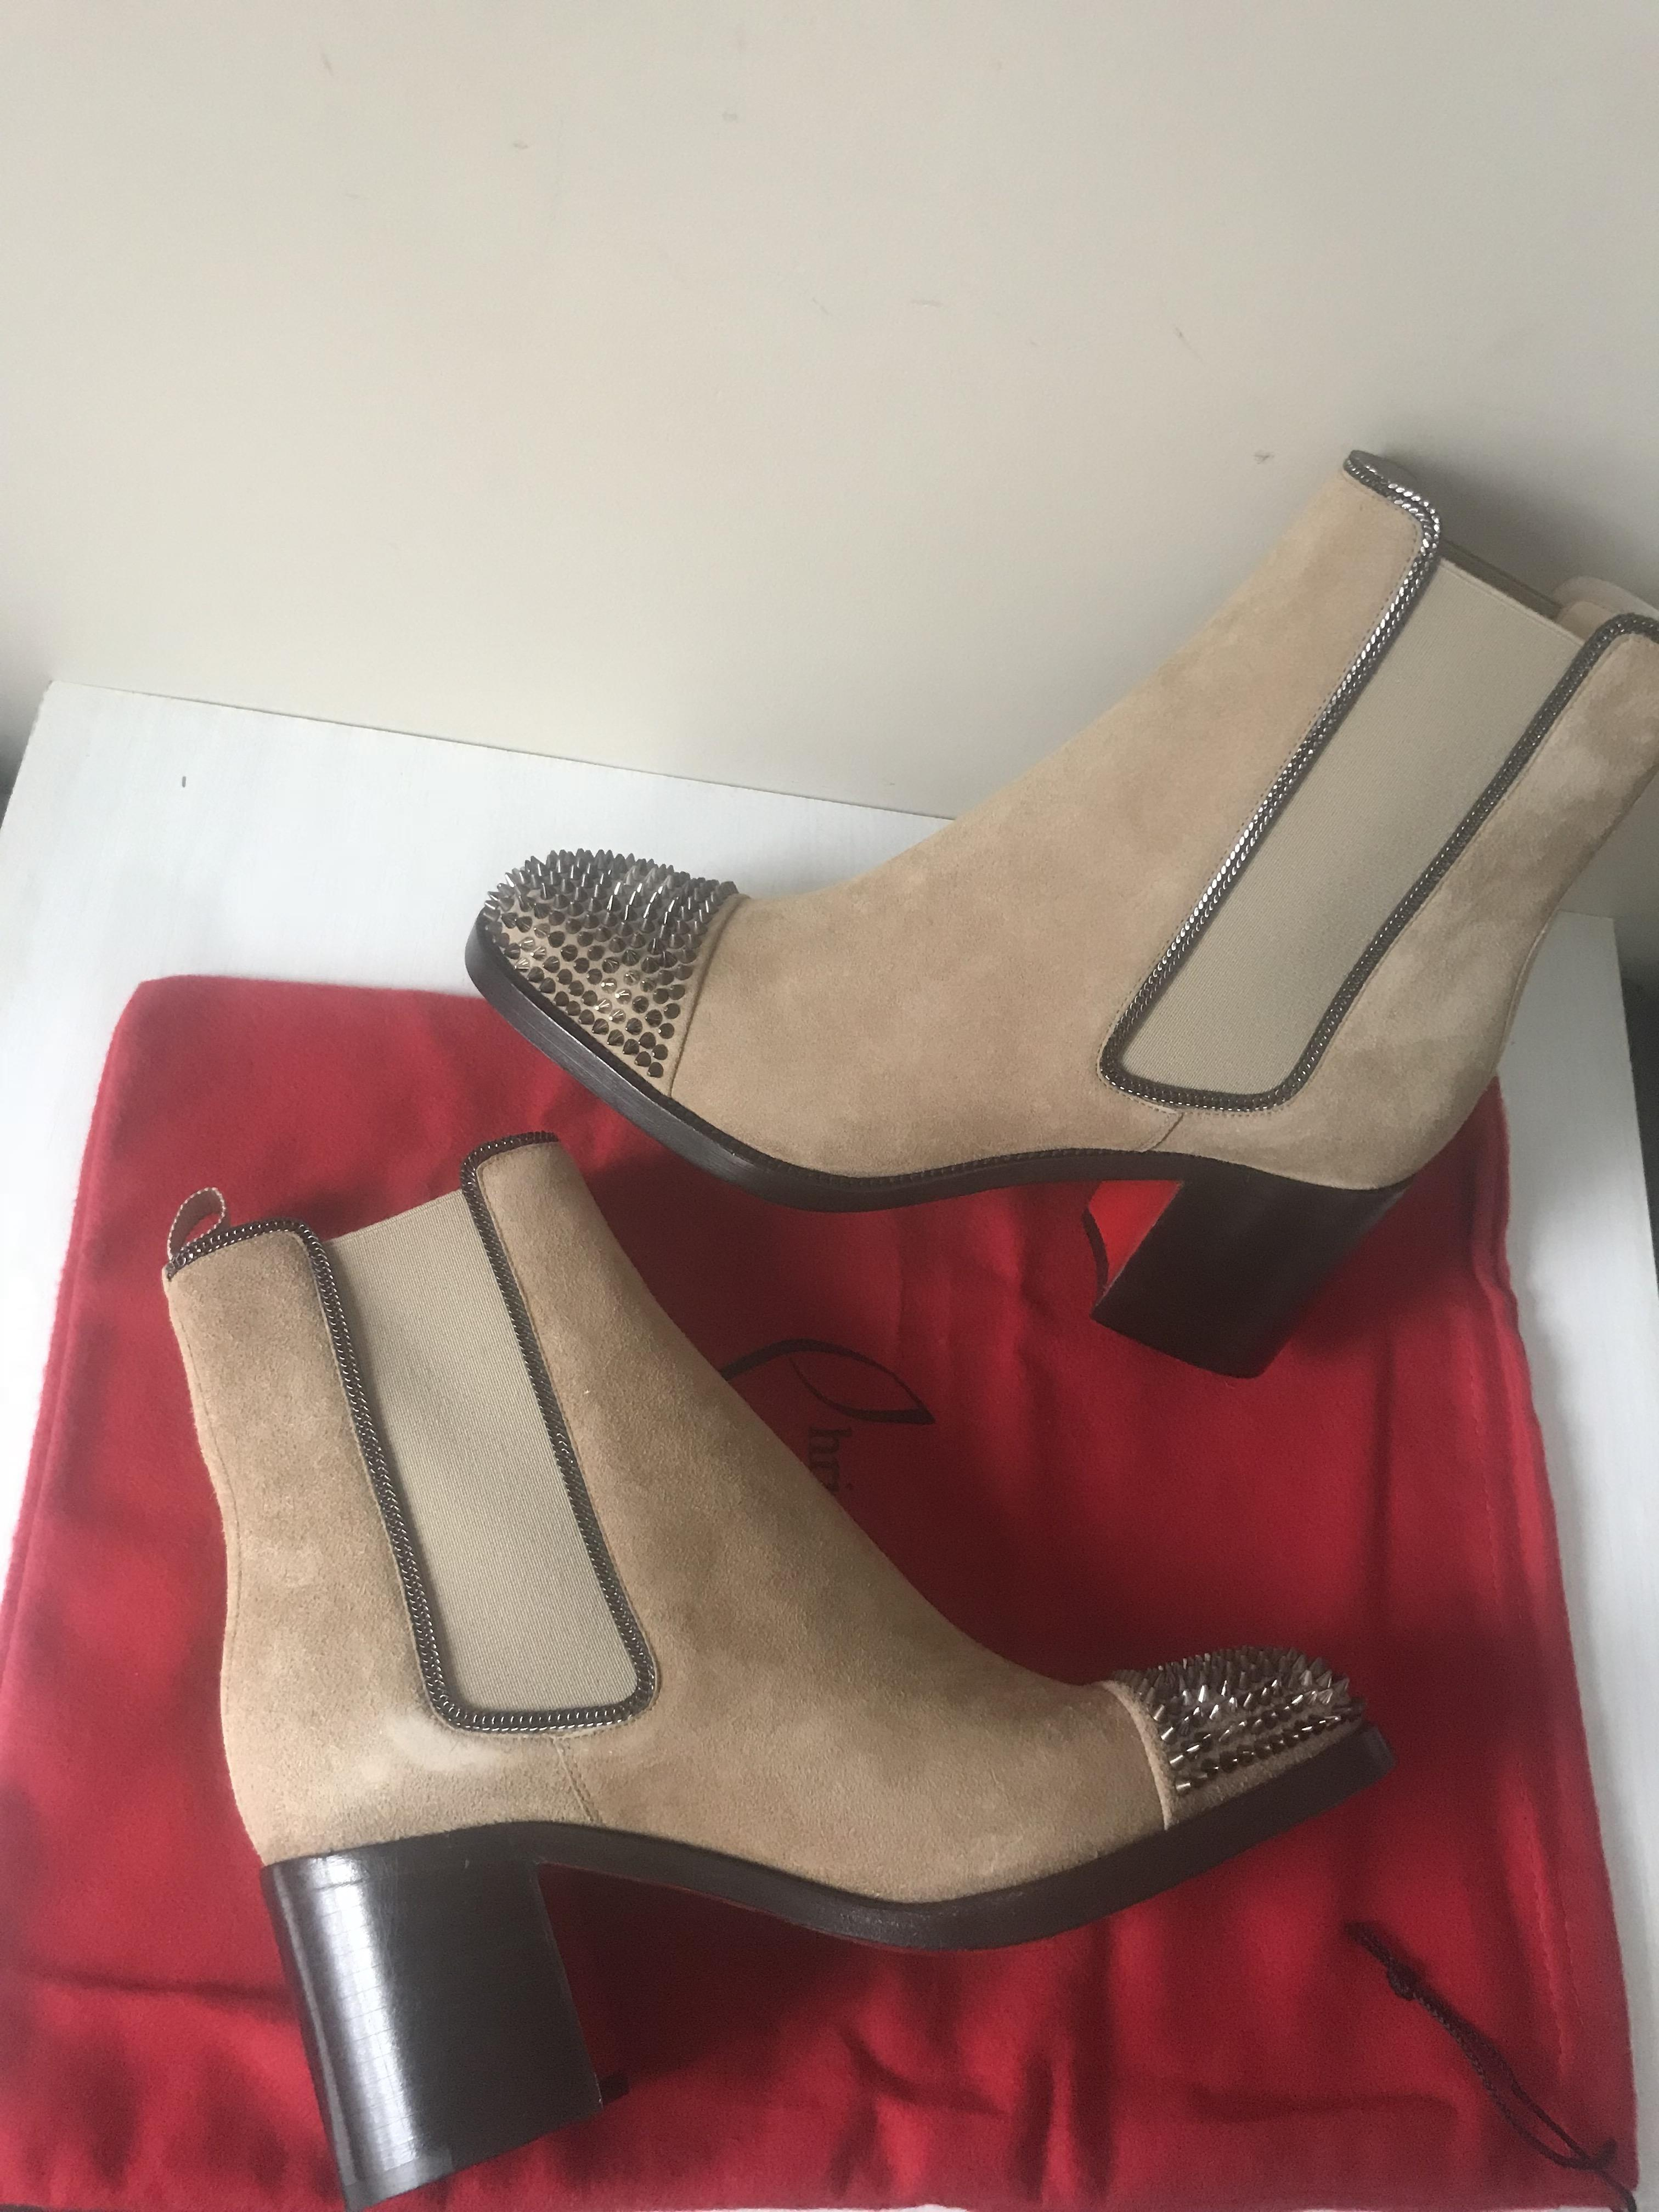 3542175516bc ... Christian Louboutin Tan Otaboo 70 70 70 Suede Spiked Studded Ankle  Chelsea Heels Boots Booties ...